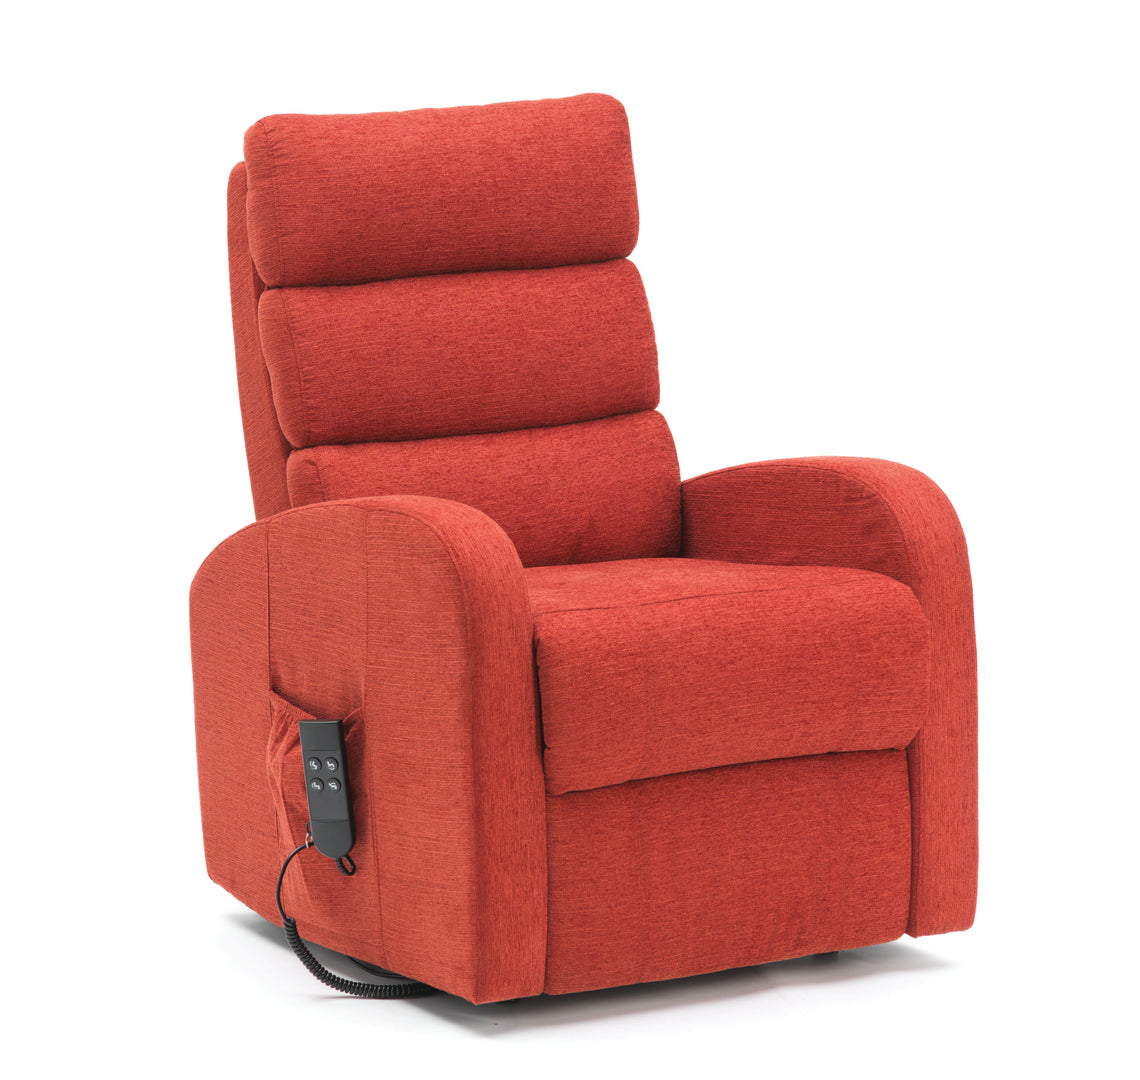 Single Motor Three Tier Waterfall Back Rise & Recliner Armchair